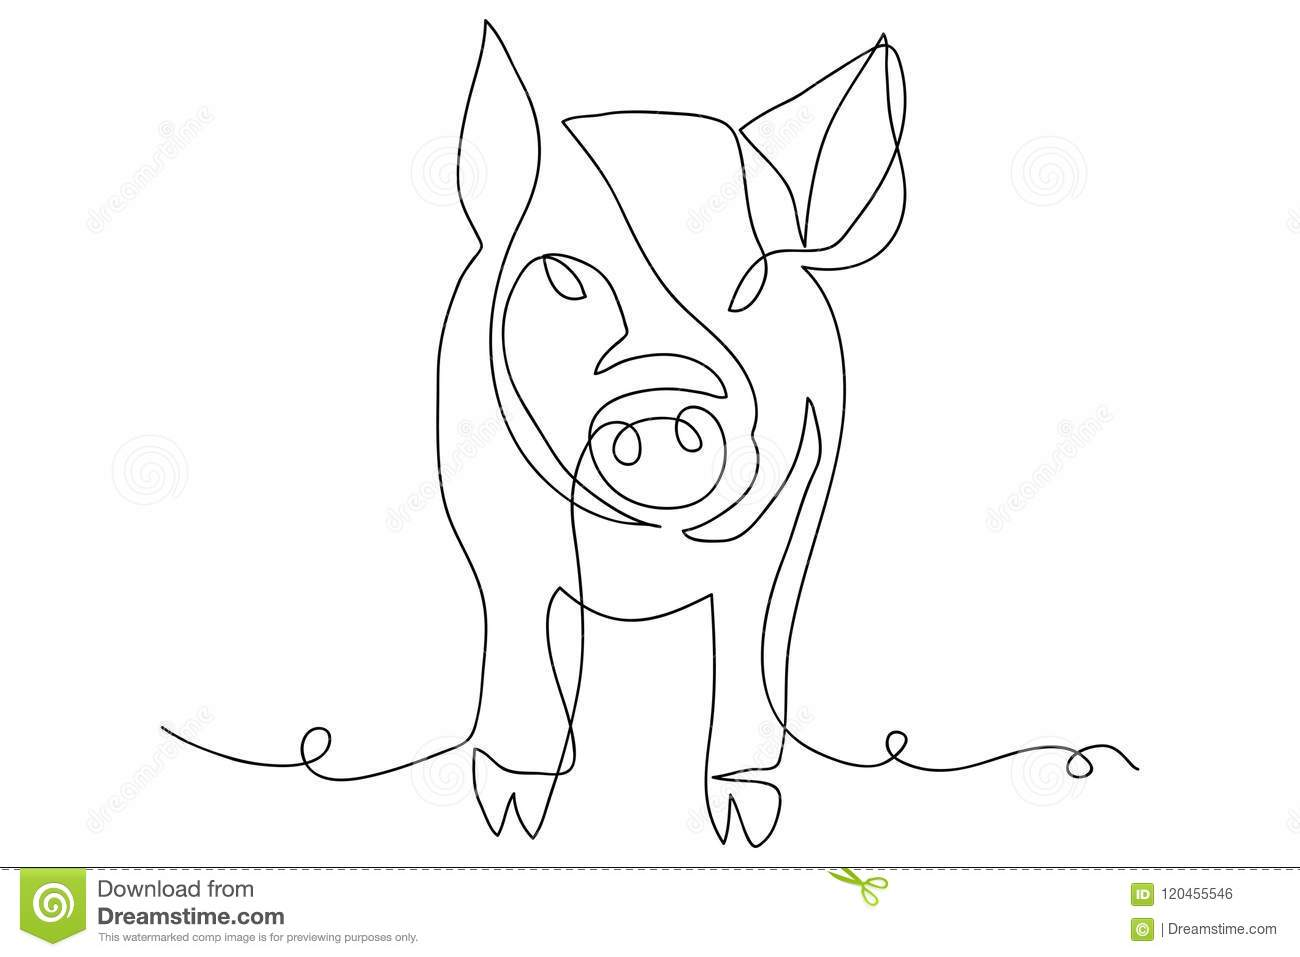 Line Drawing Of A Cute Pig Year Of Pig Linear Style And